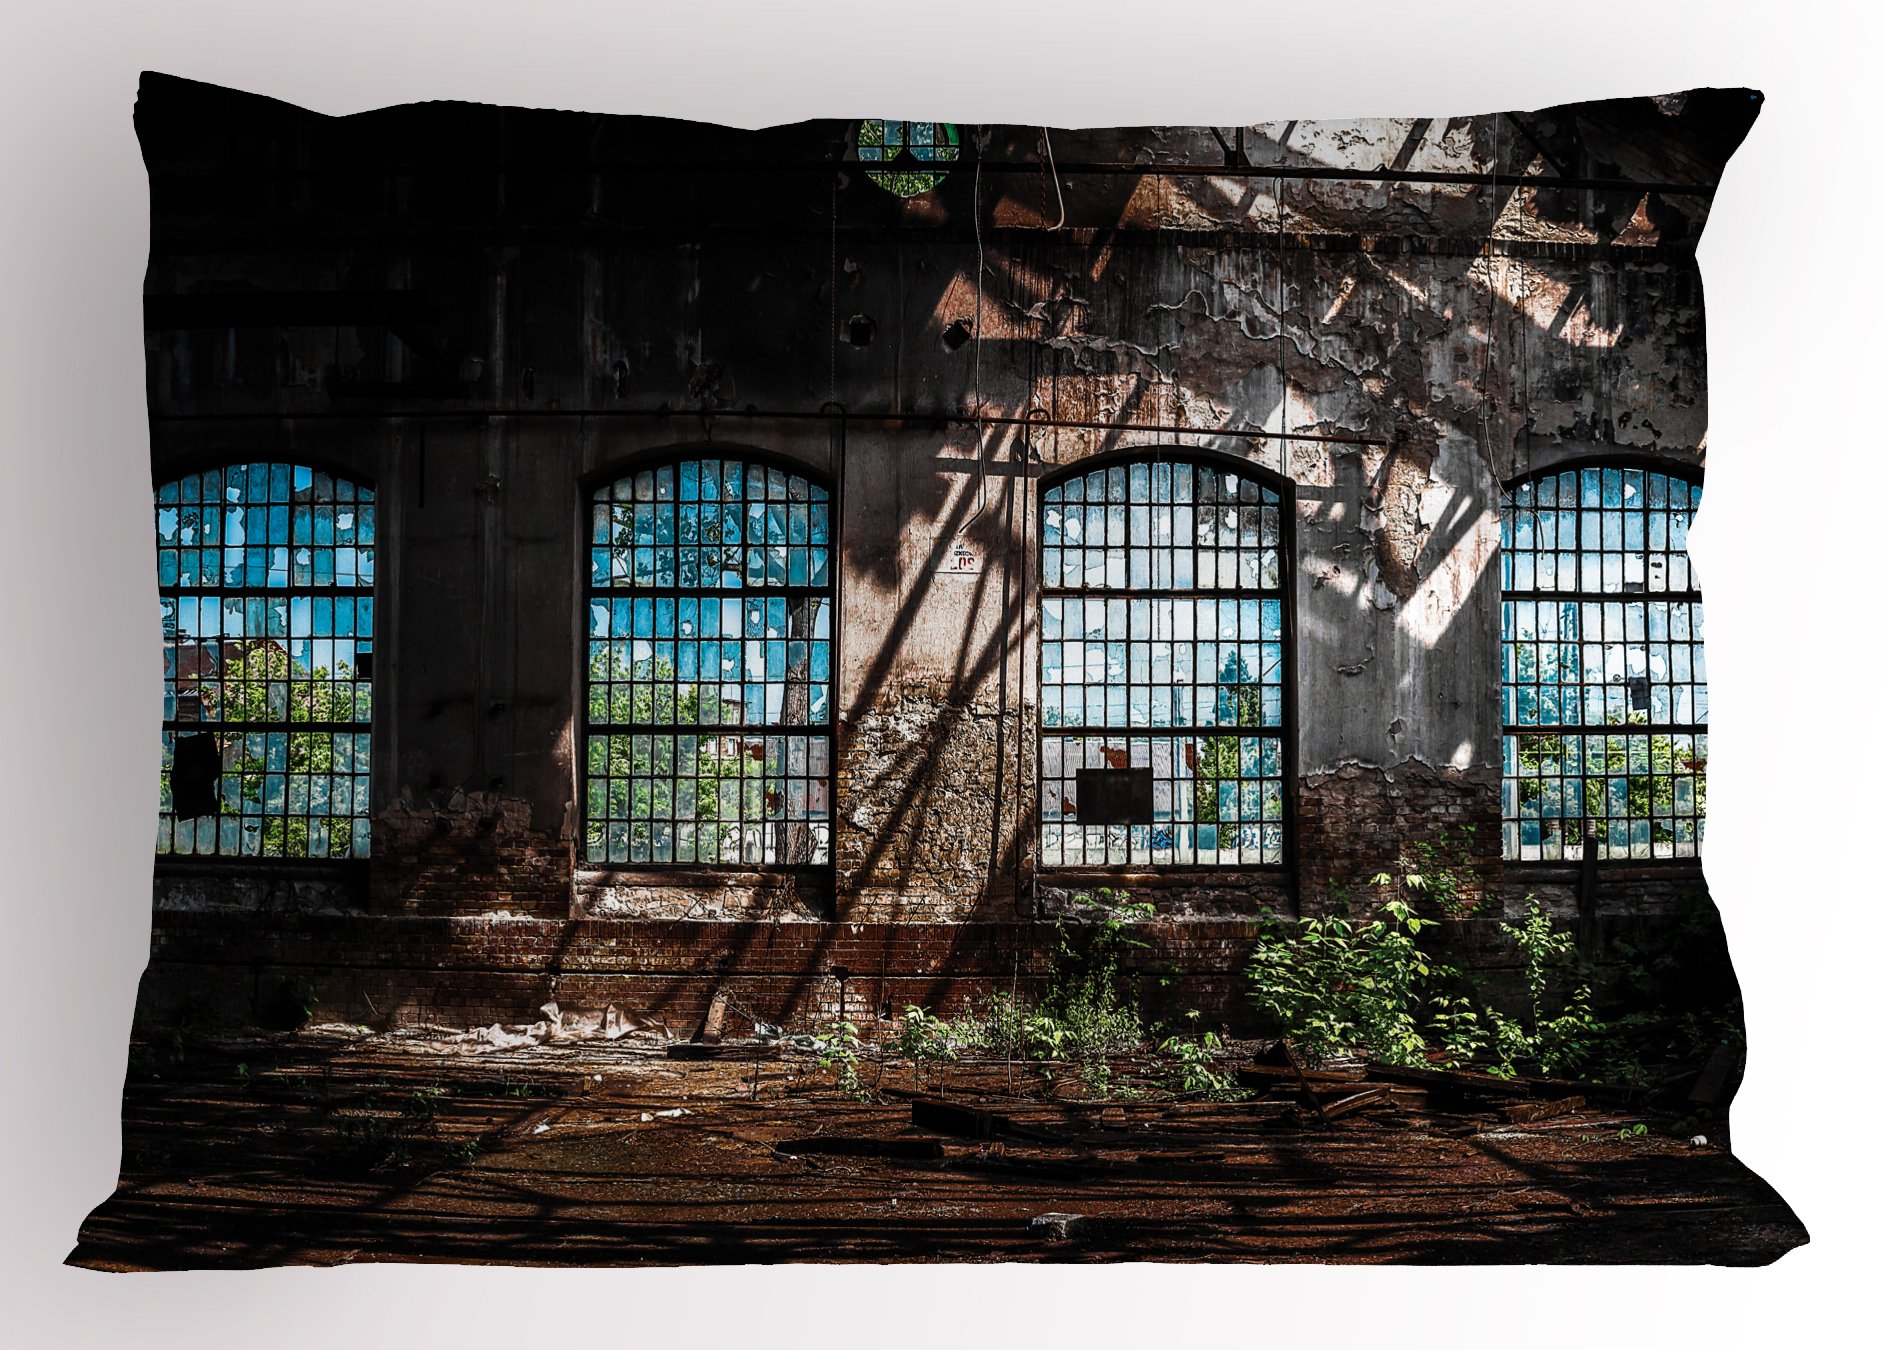 Ambesonne Industrial Pillow Sham, Industrial Interior with Tall Old Windows Ruins Hallway Station Shadow, Decorative Standard Queen Size Printed Pillowcase, 30 X 20 inches, Brown Blue Green